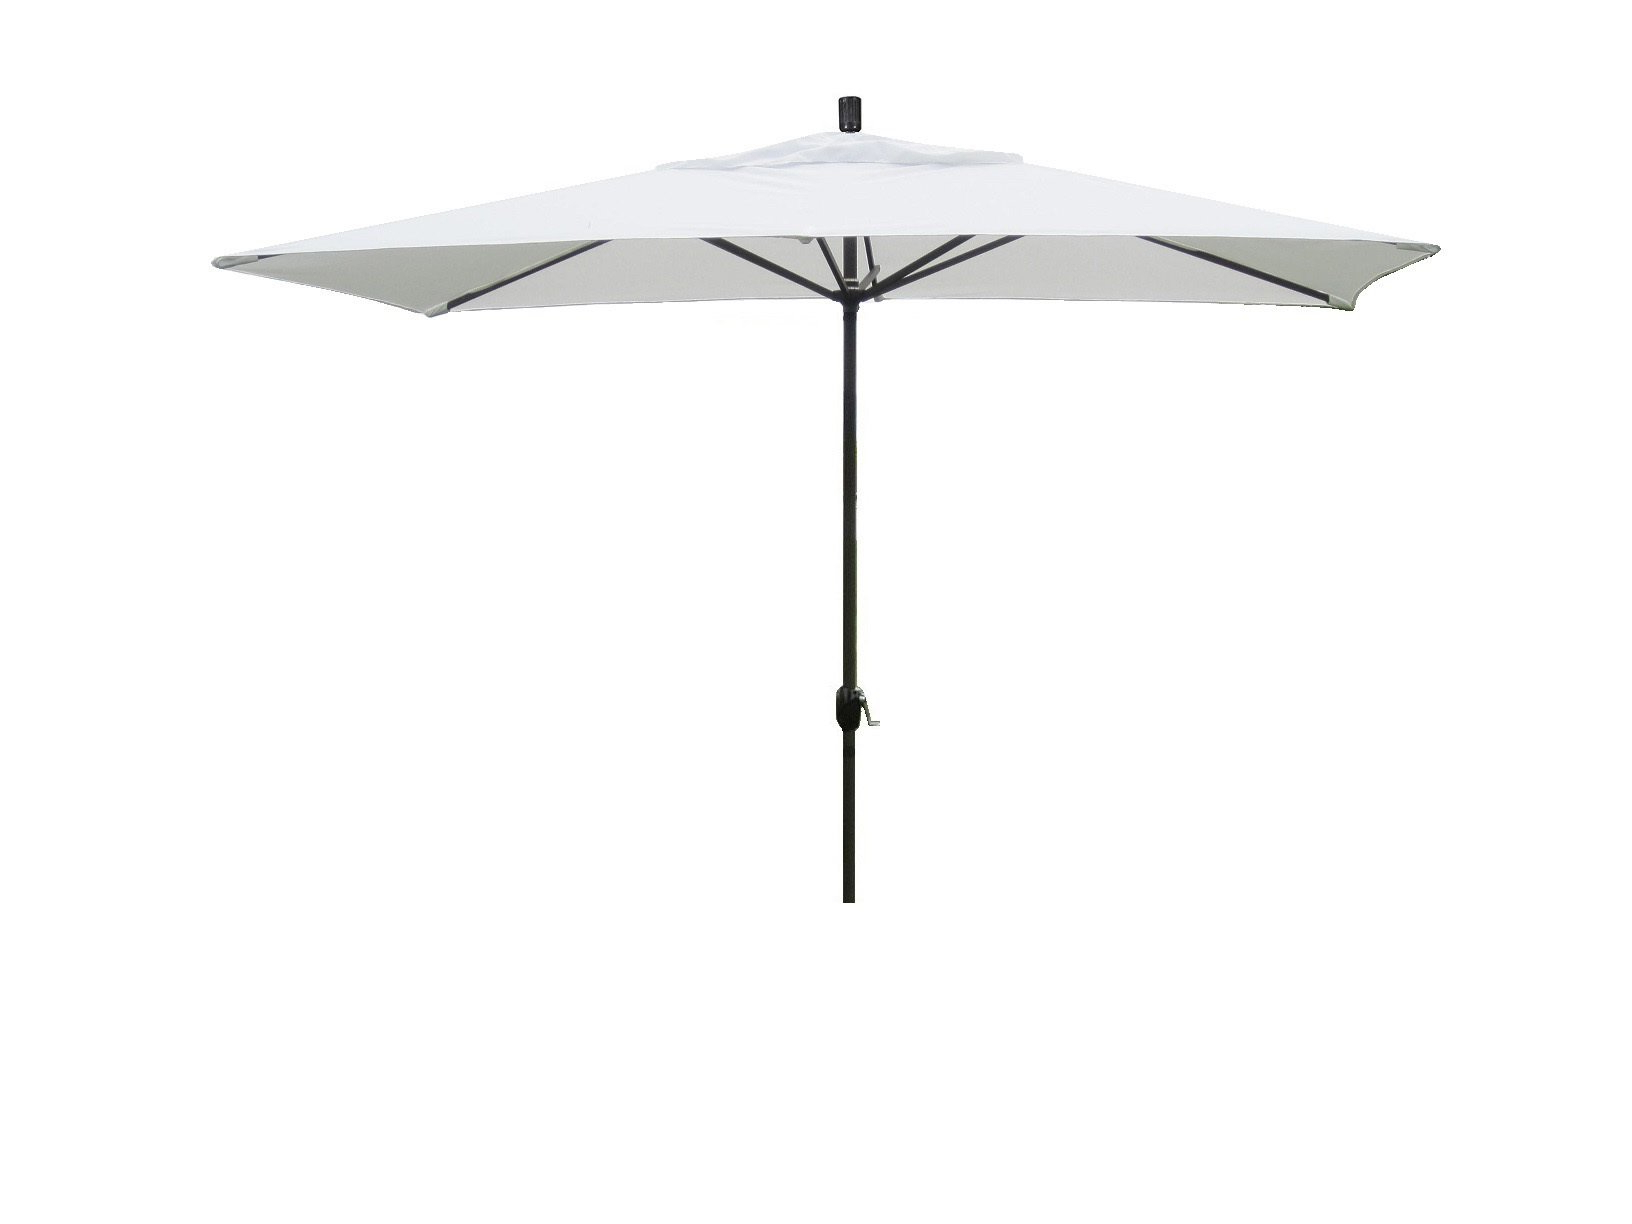 Northfleet 10' X 6' Rectangular Market Umbrella In Most Up To Date Northfleet Rectangular Market Umbrellas (Gallery 1 of 20)